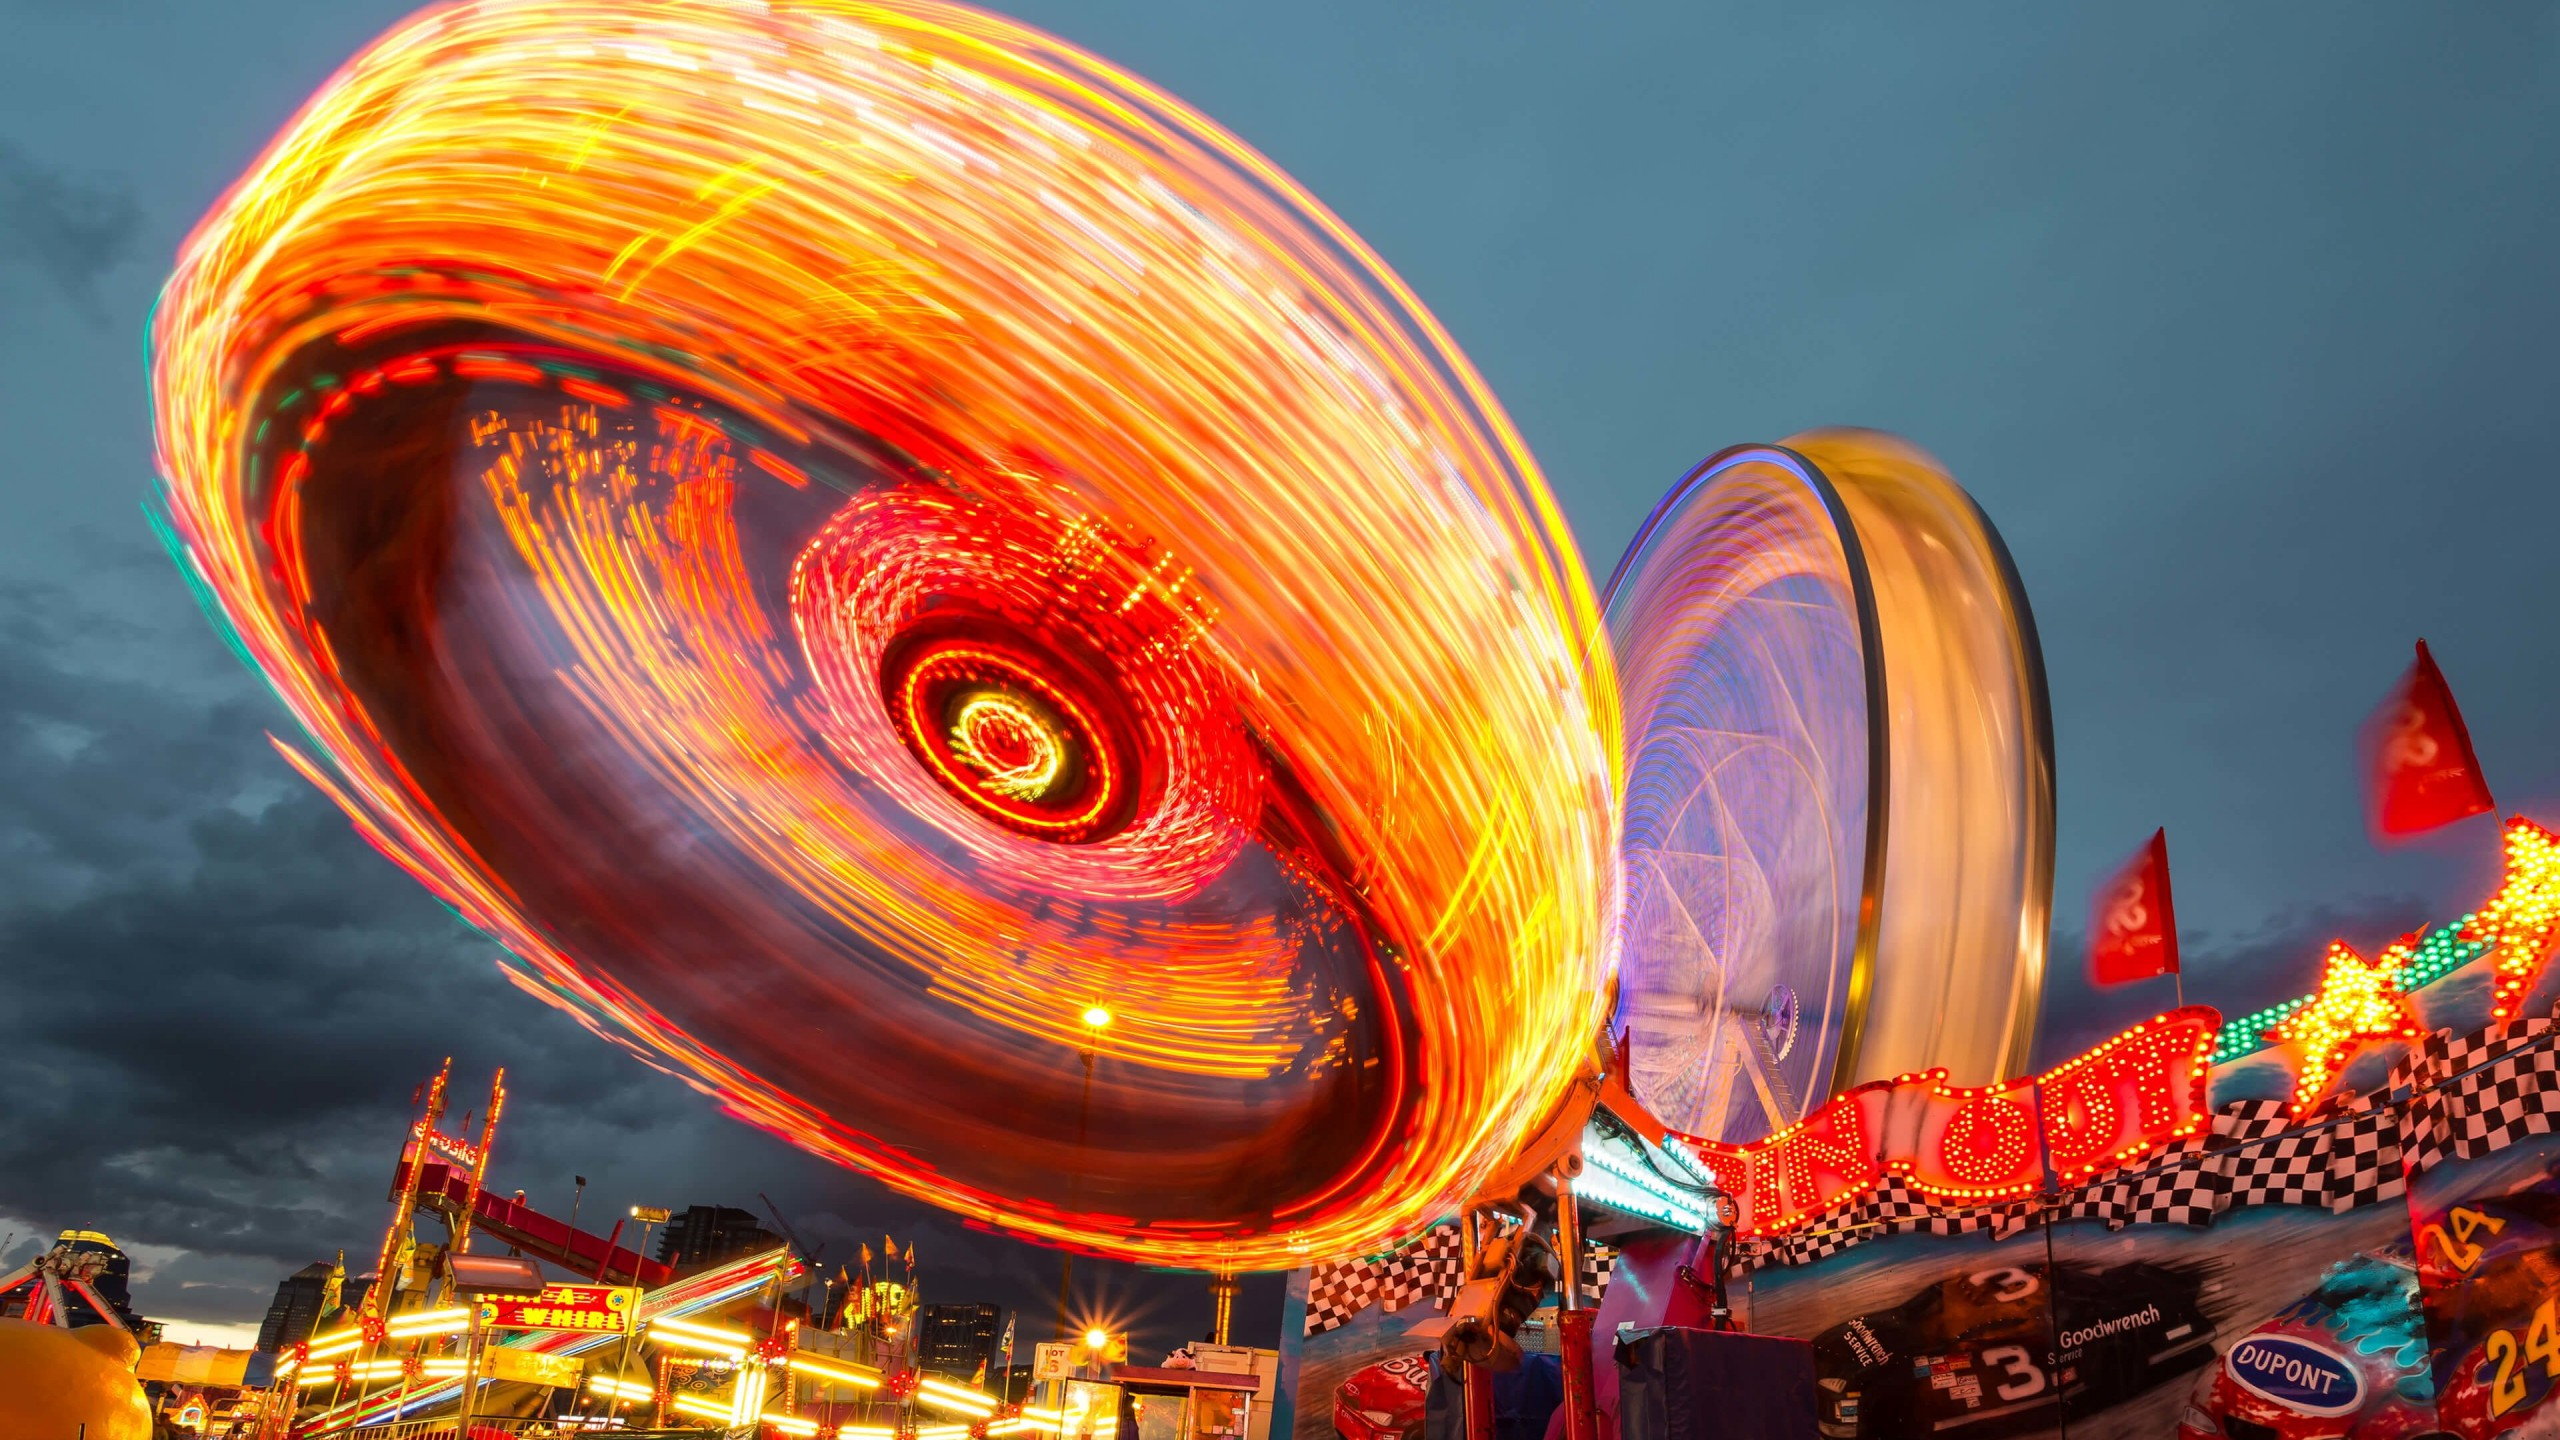 Calgary Stampede Lights Wallpaper for Desktop 2560x1440